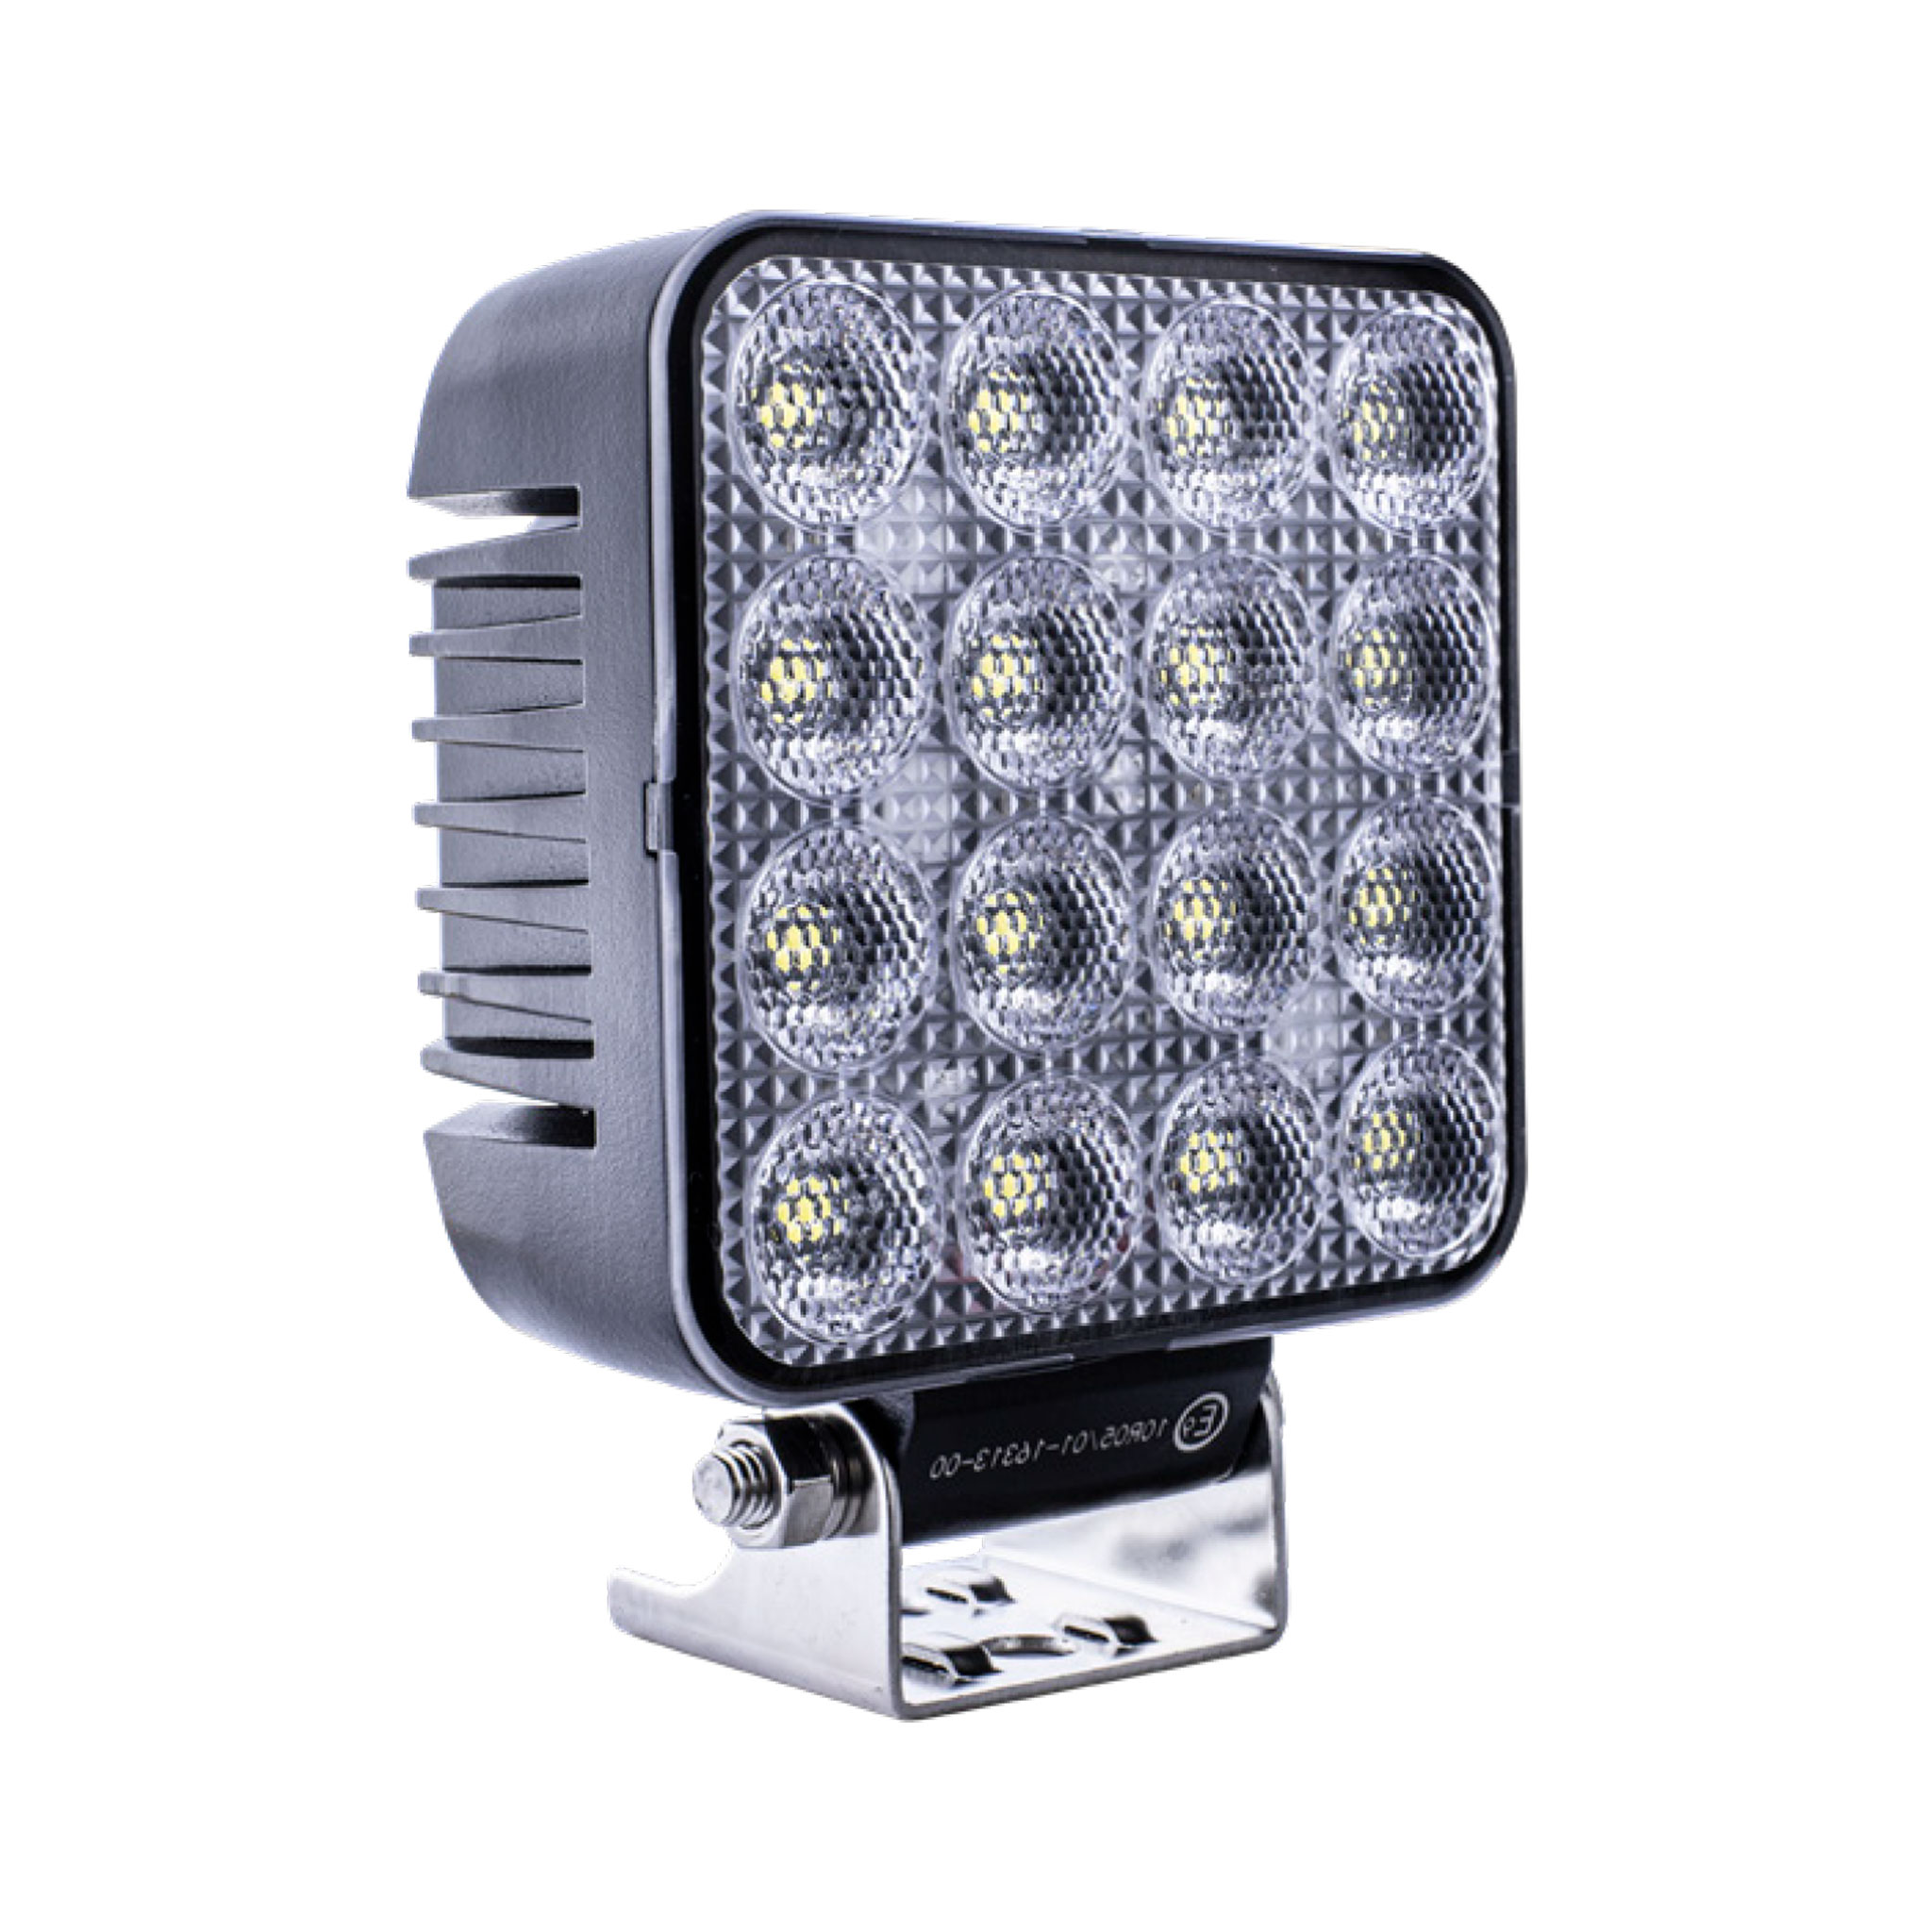 Strands UNITY arbetsljus 92W LED 10-32V DC, IP69K